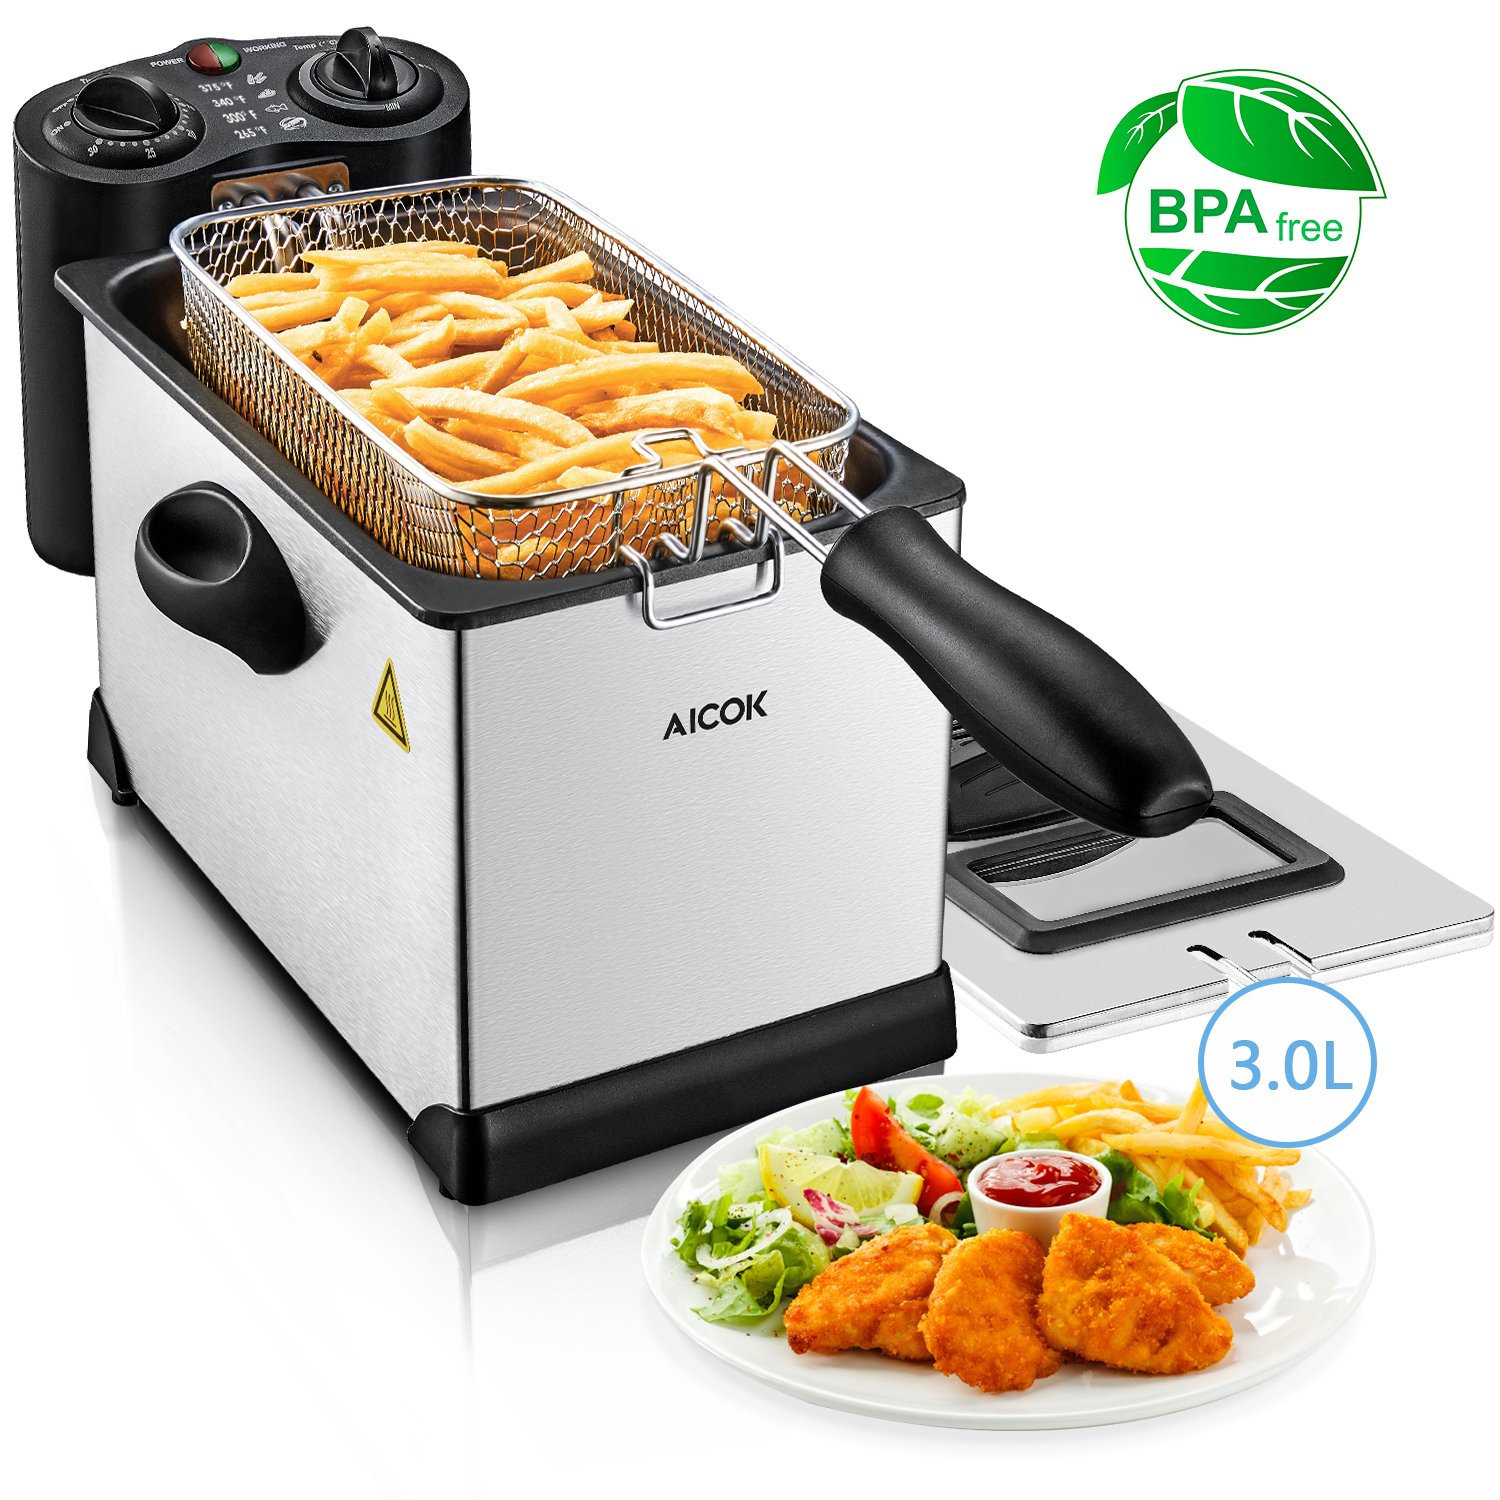 Deep Fryer with Basket, Aicok Stainless Steel Electric Oil Deep Fryer Machine with Adjustable Temperature & Timer, Easy to Clean, Perfect for Fries, Chicken, Shrimp, Fully Removable, 3 Liter, 1700W DF-036